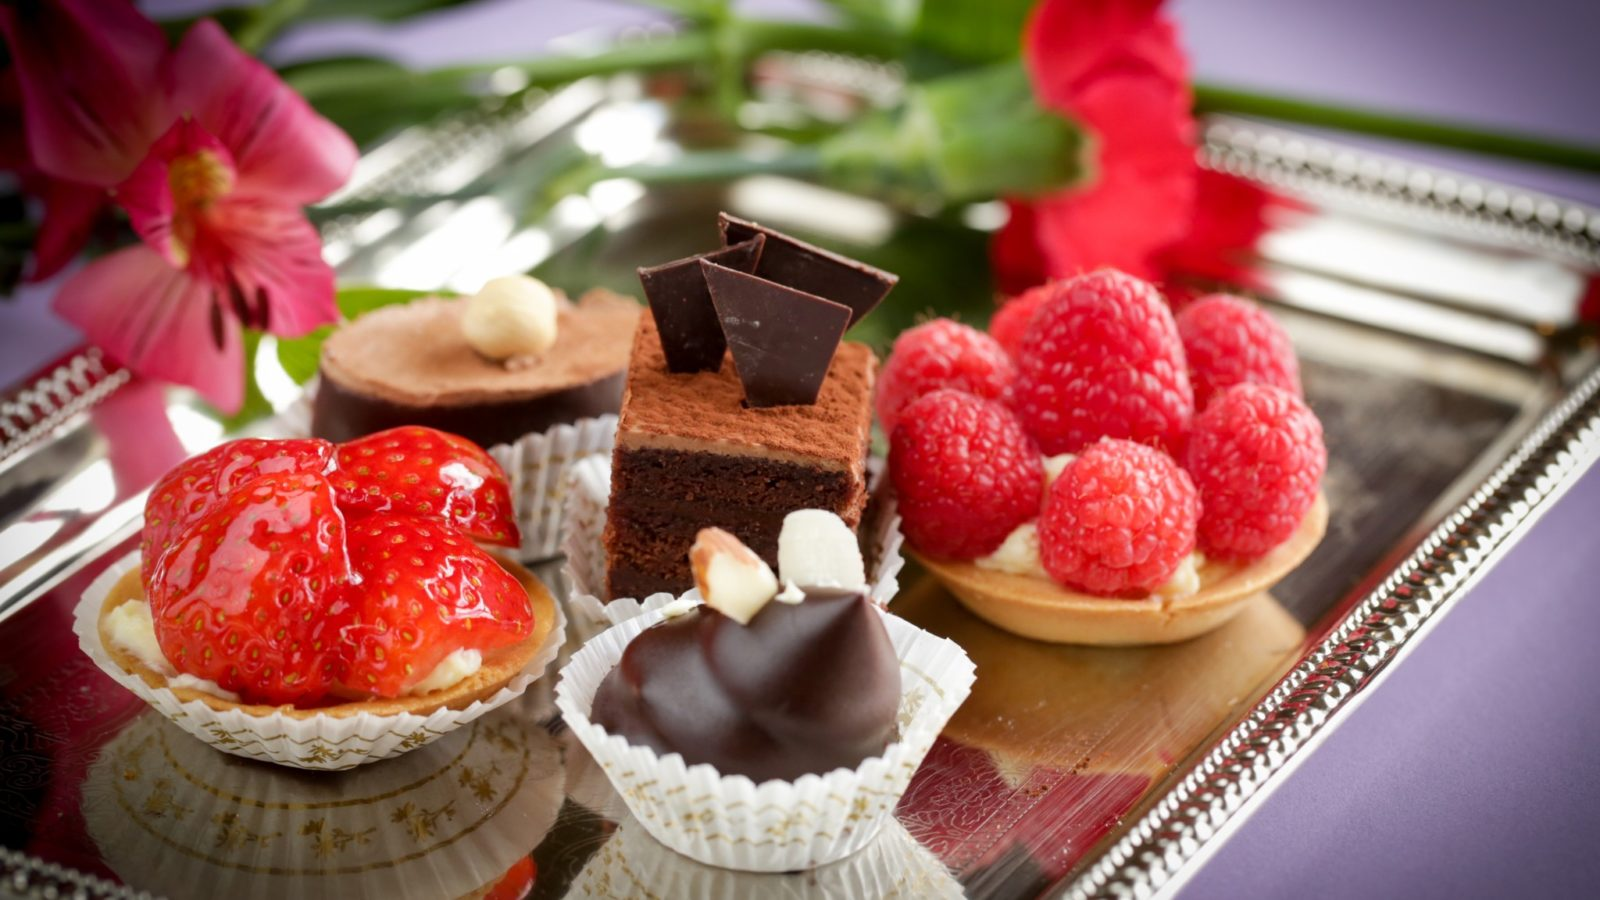 Bite-Sized Desserts and Pastries